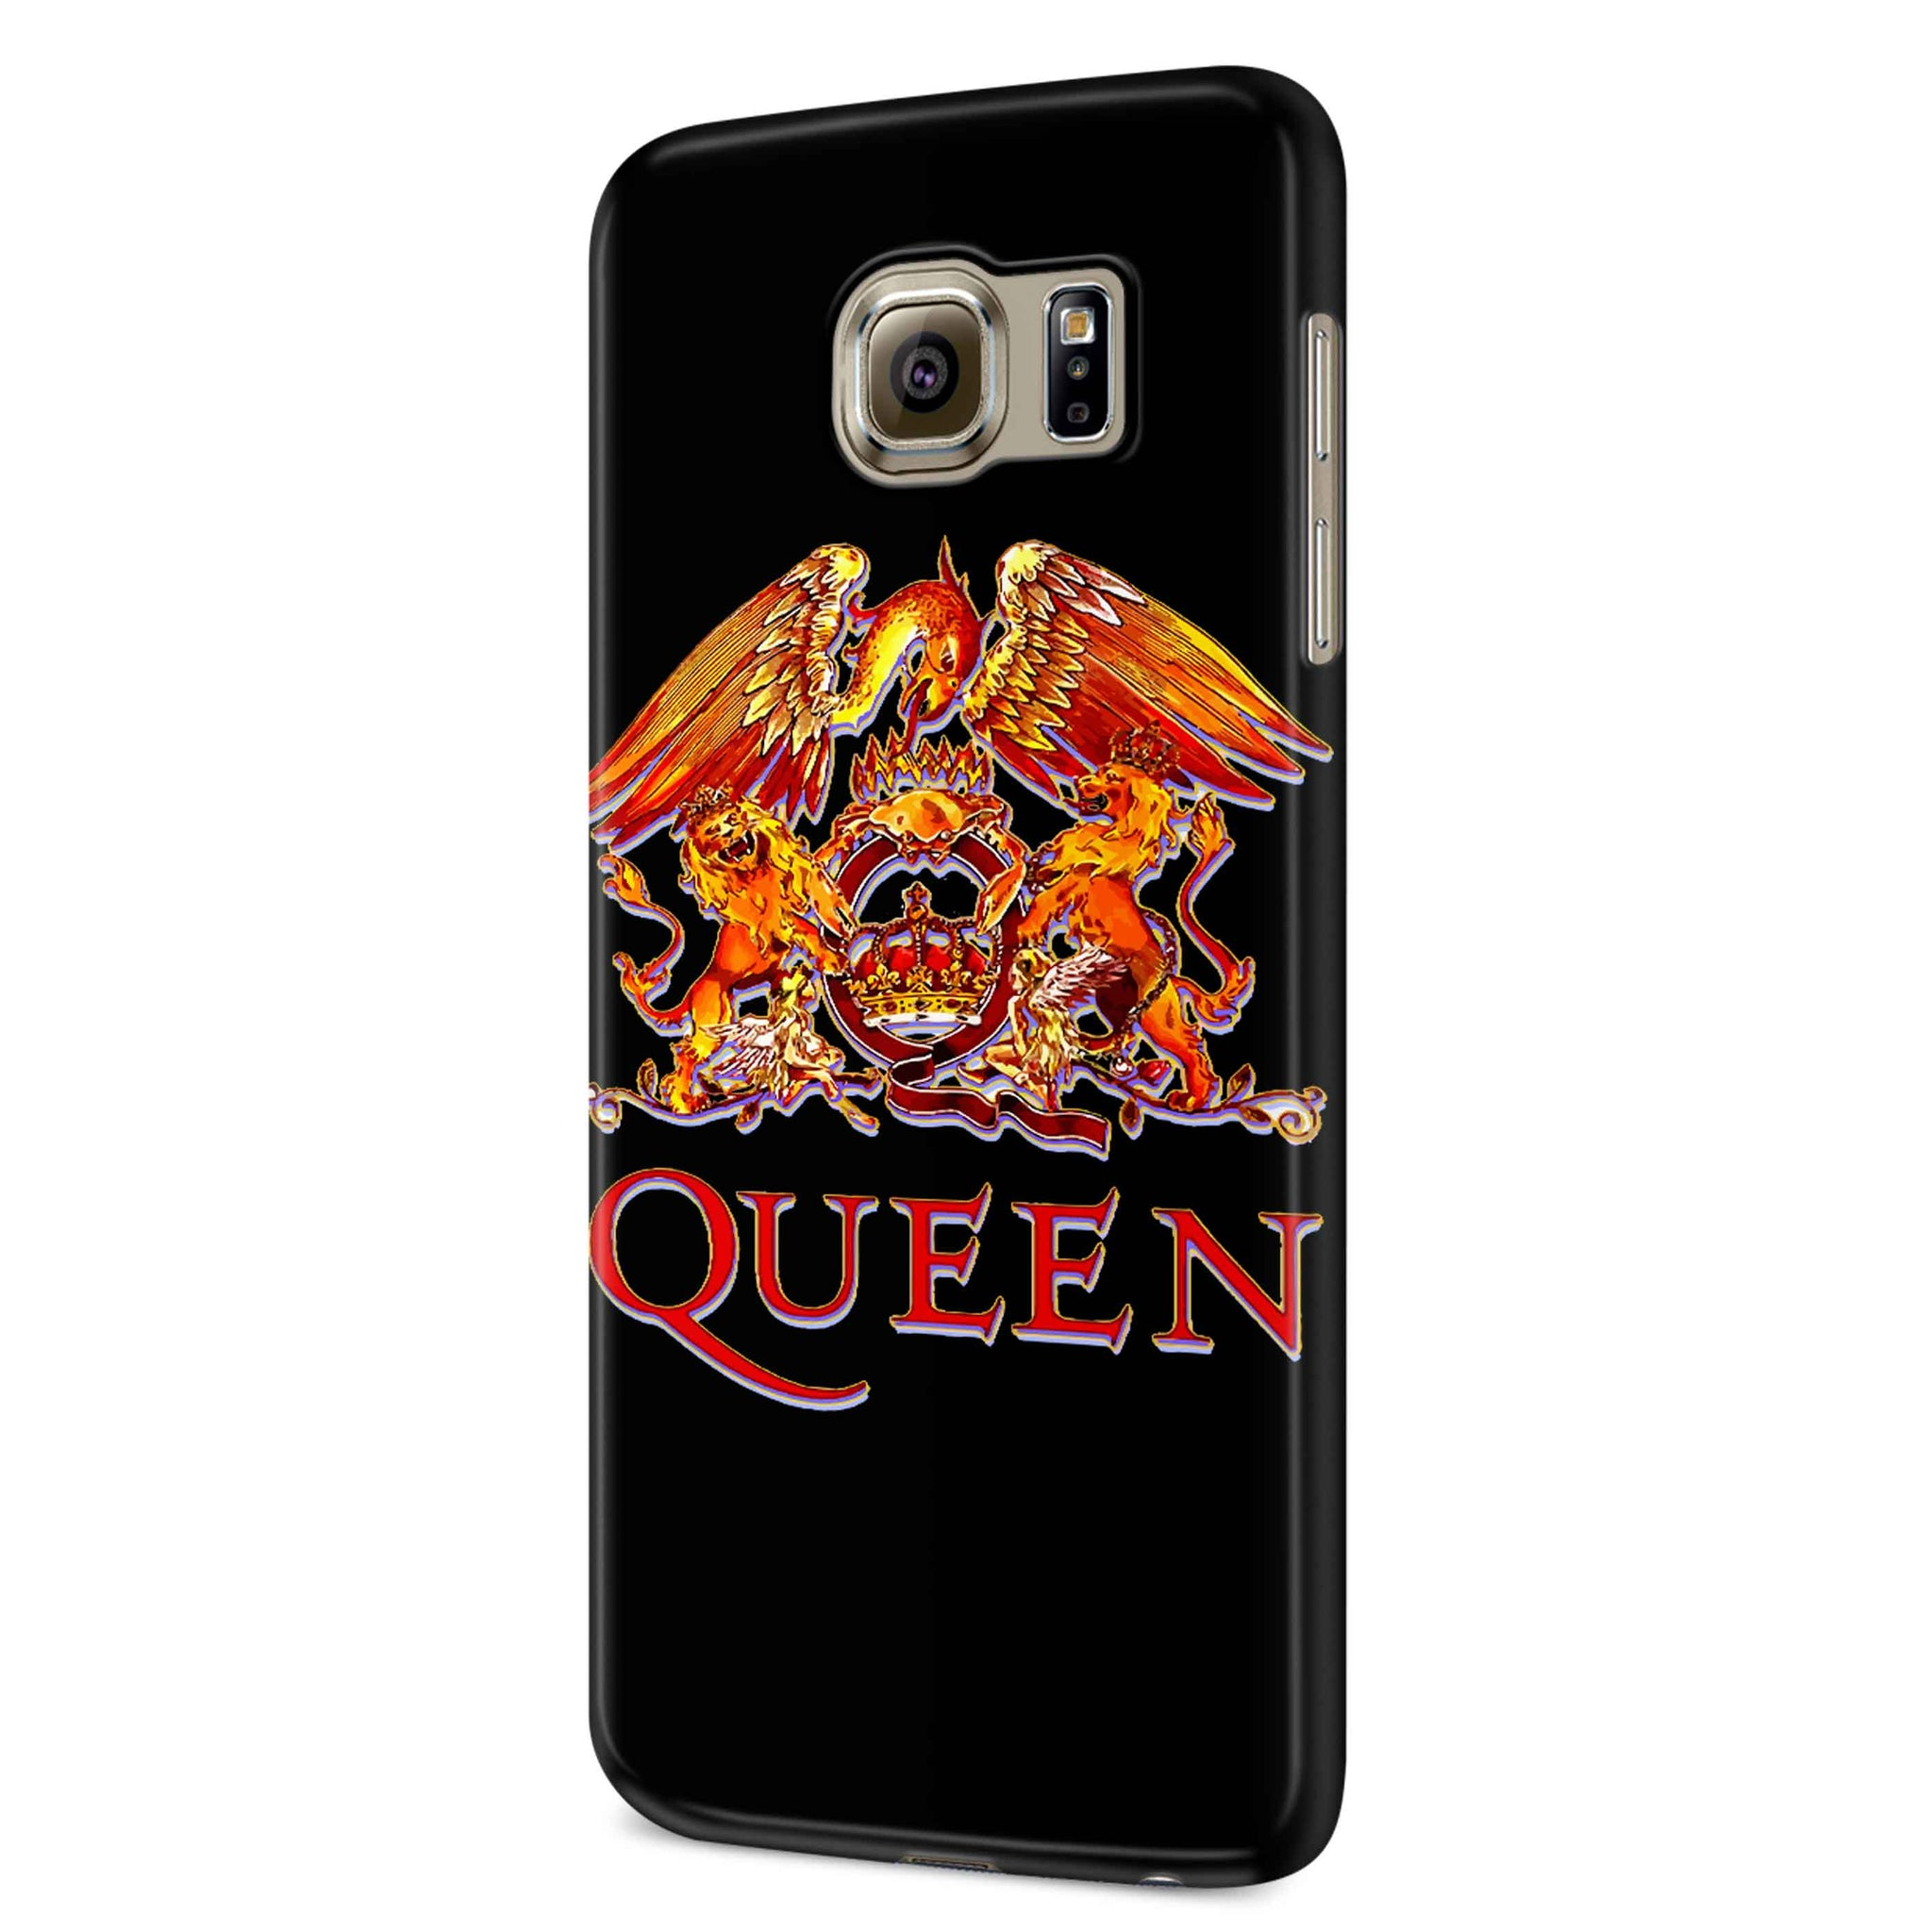 Queen Freddie Mercury Legend 1 Samsung Galaxy S6 S6 Edge Plus/ S7 S7 Edge / S8 S8 Plus / S9 S9 plus 3D Case